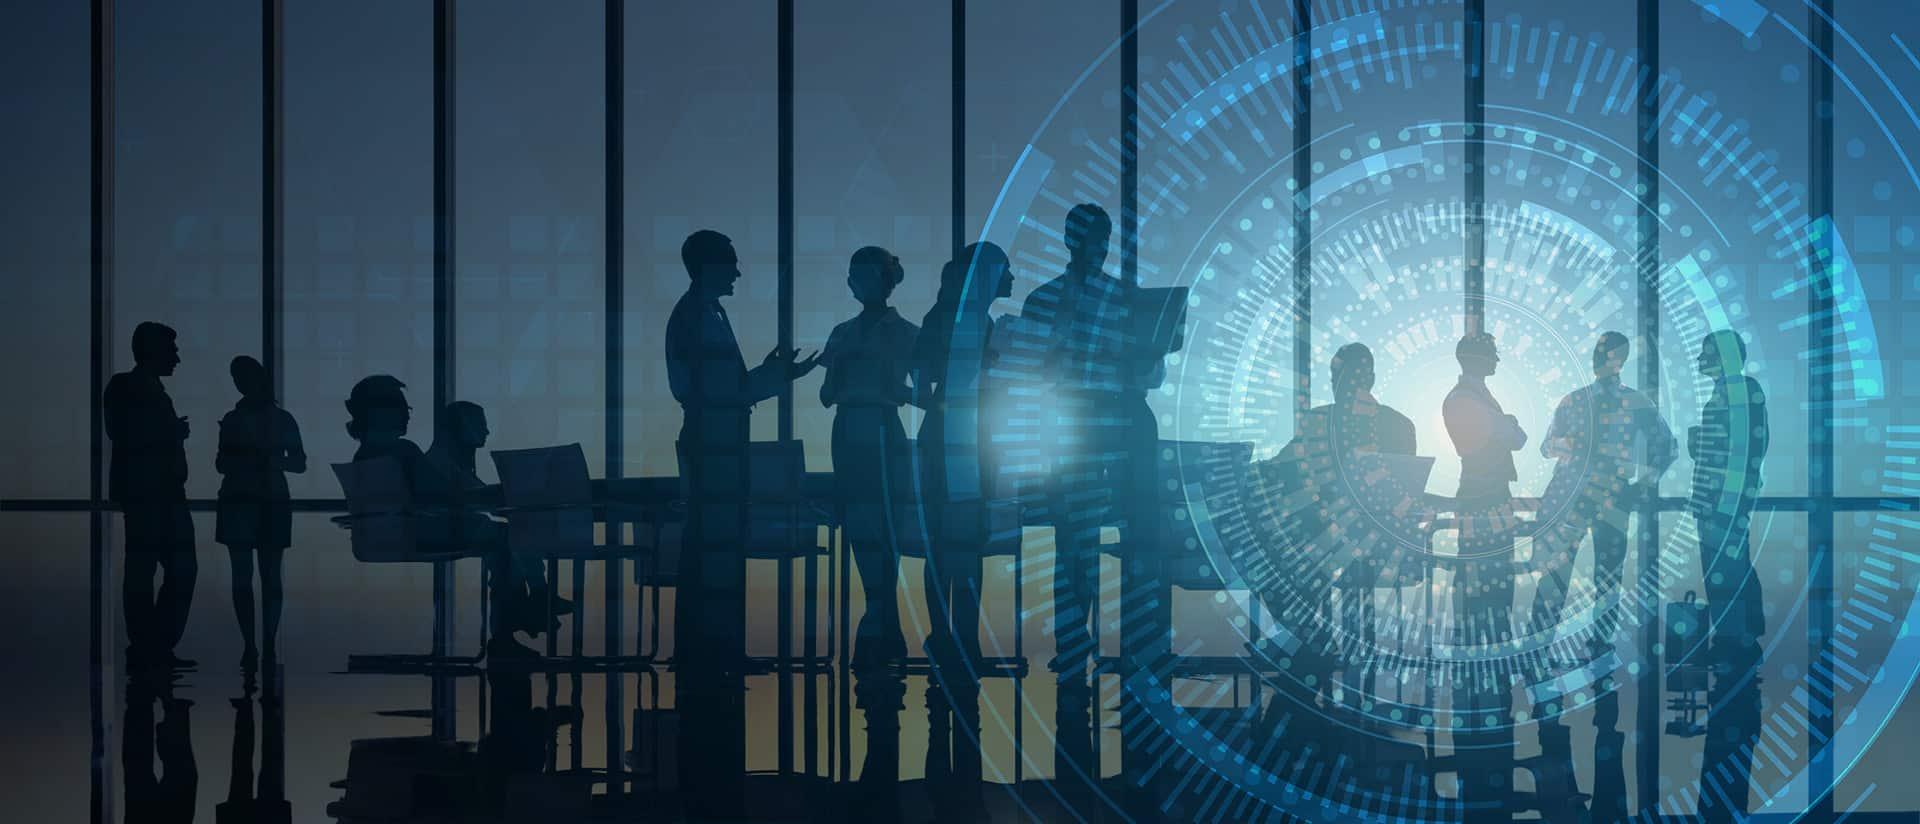 Lazarus Alliance is the Cybervisor® that helps private and public sector organizations deter threats, eliminate gaps, and proactively manage risk.